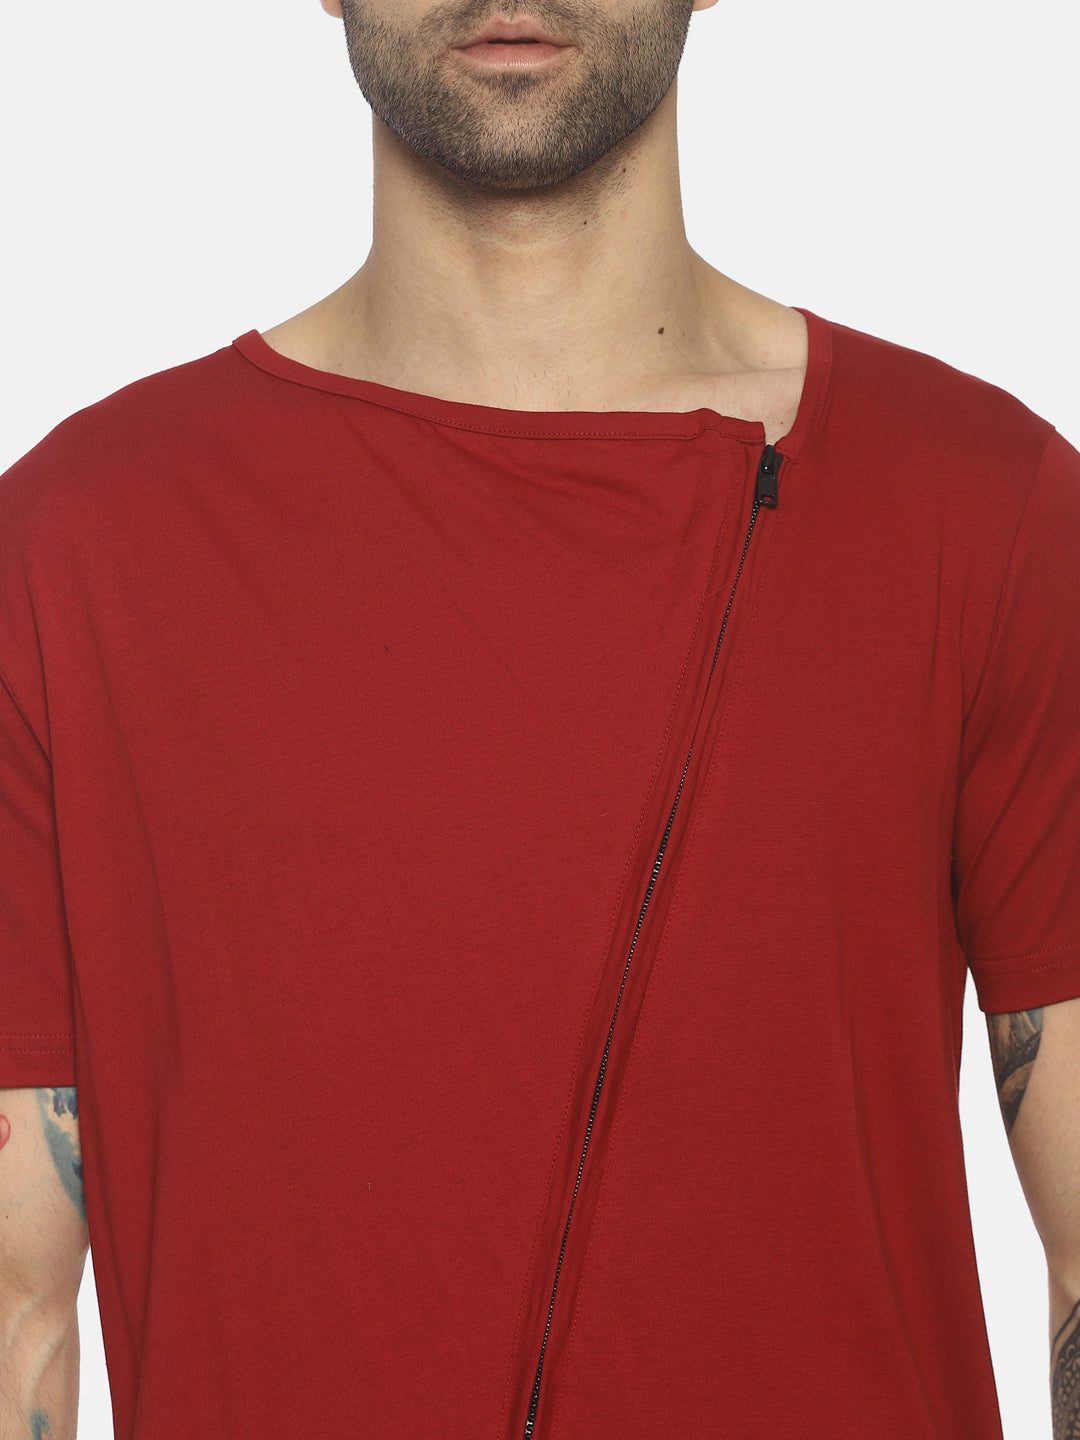 New Granded Collar T shirt With Zipper